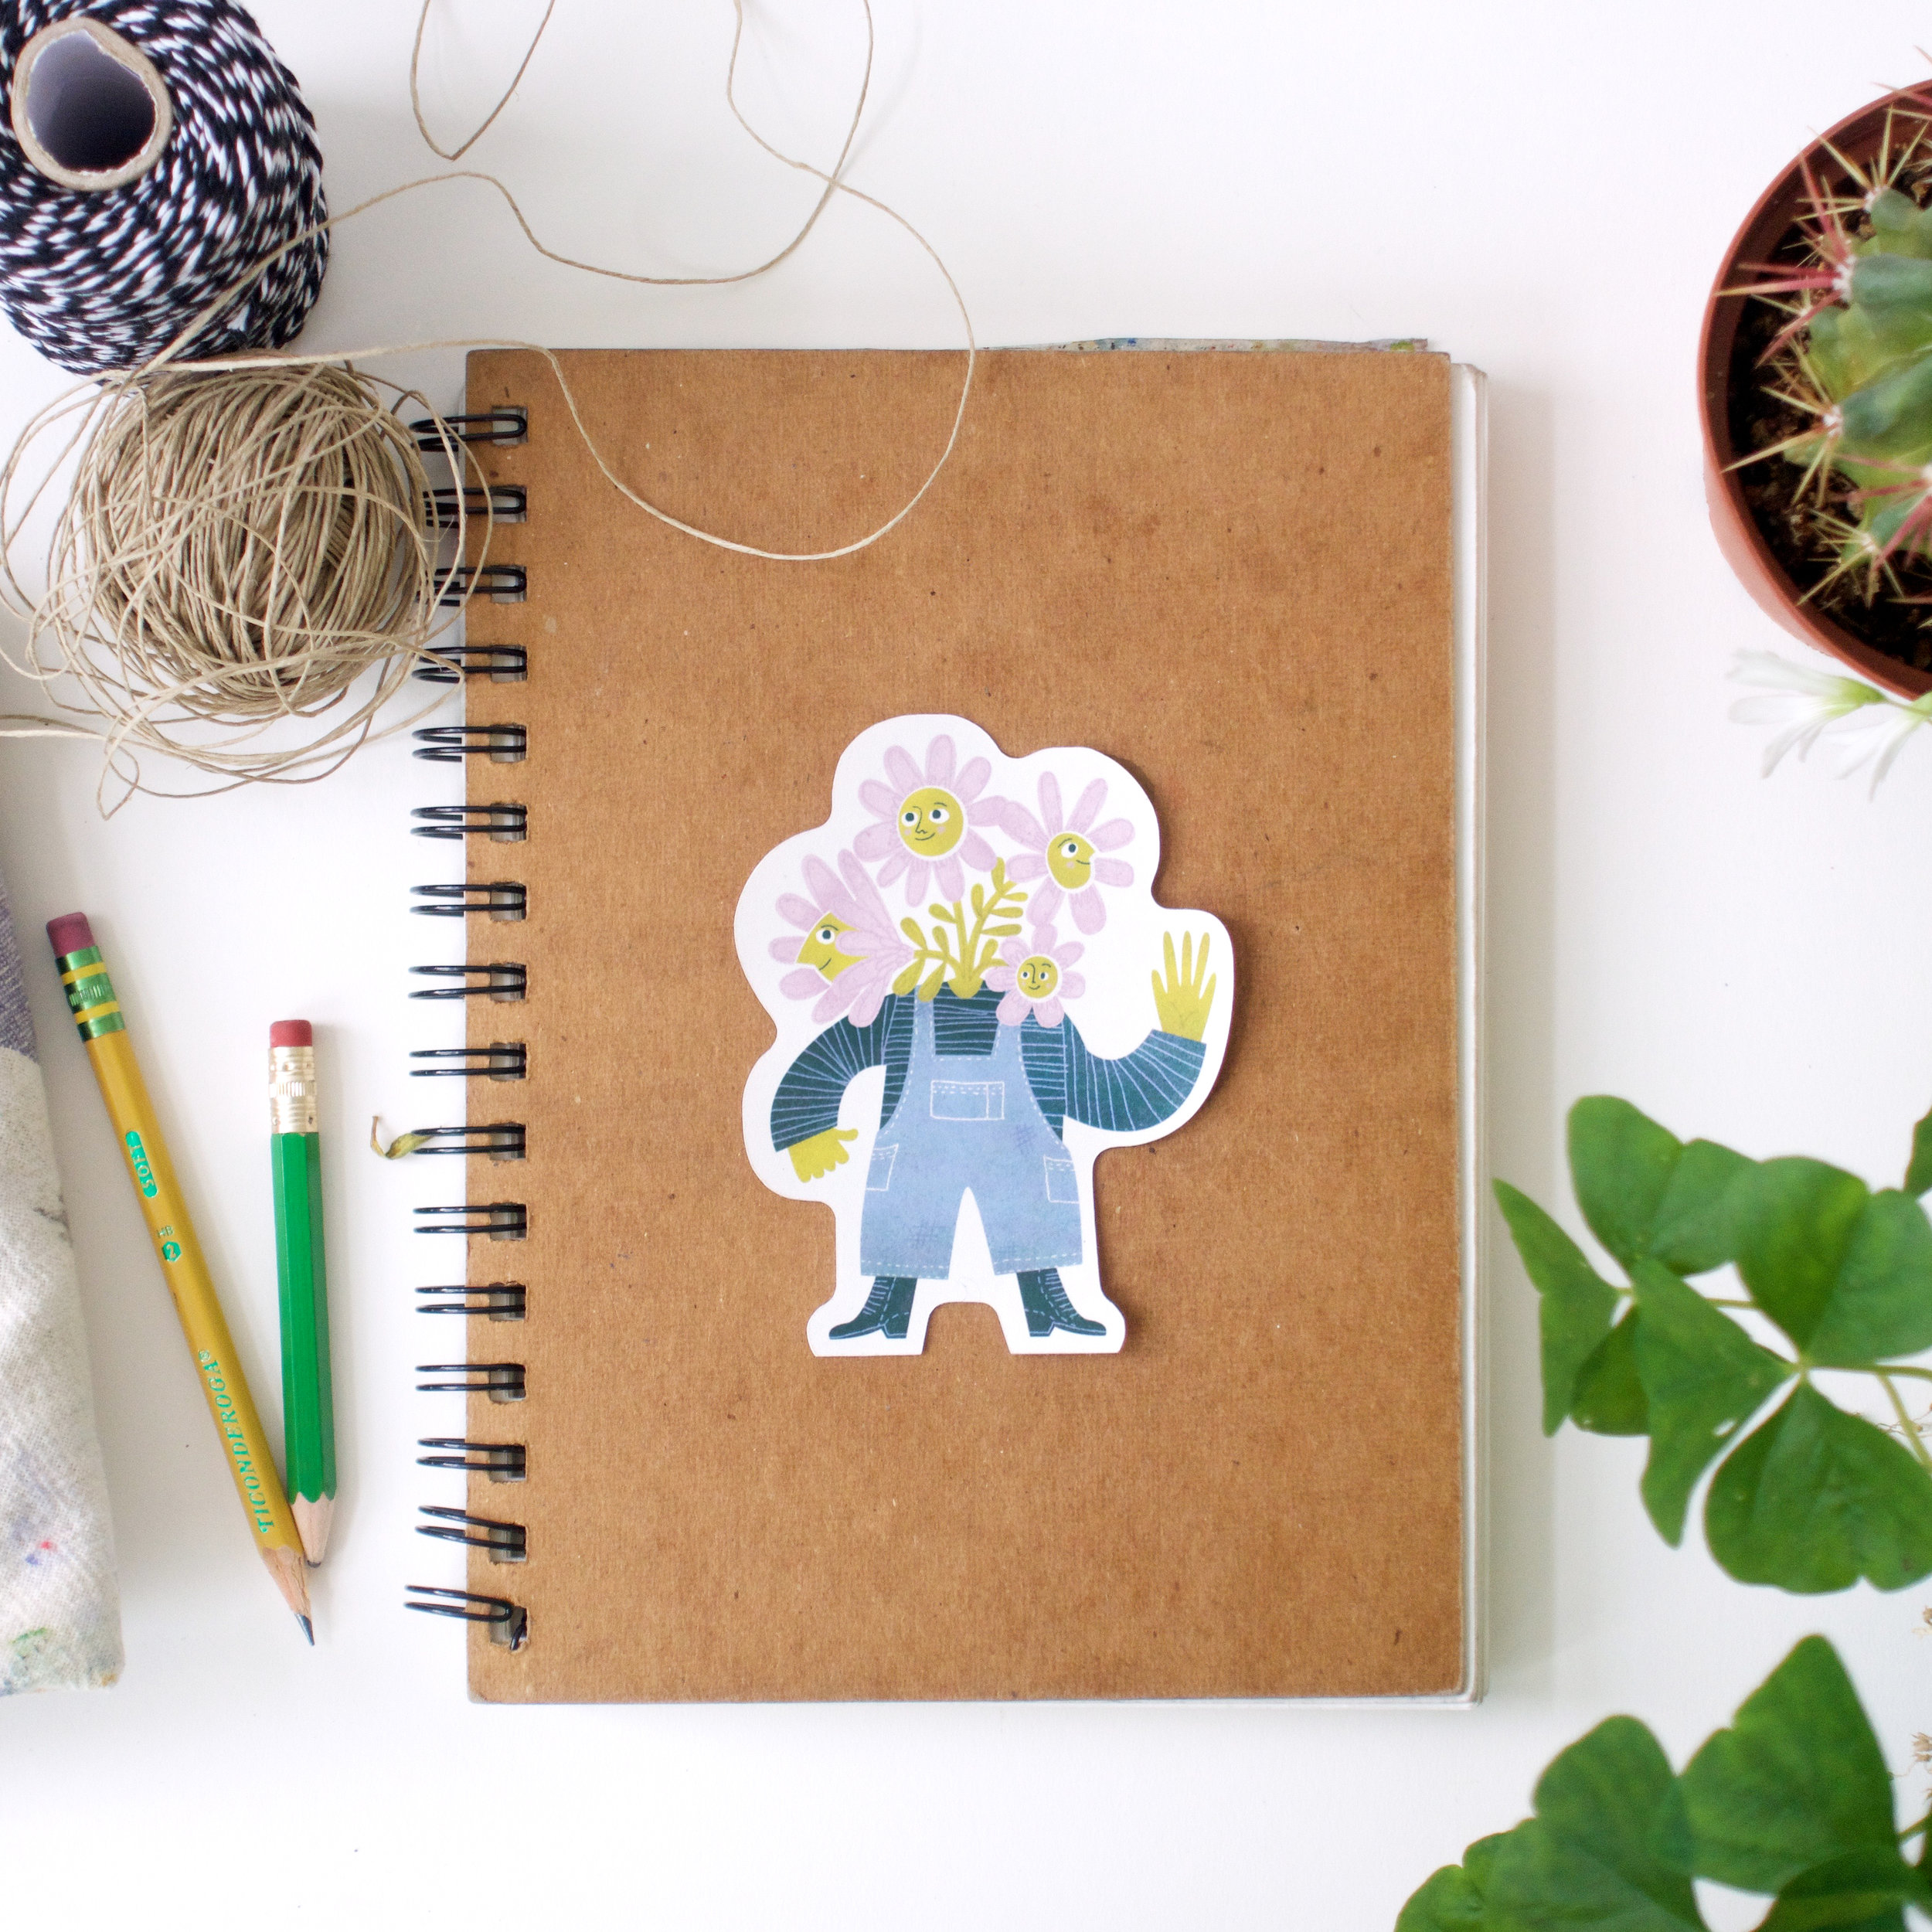 flower-sticker-2-etsy-3.jpg